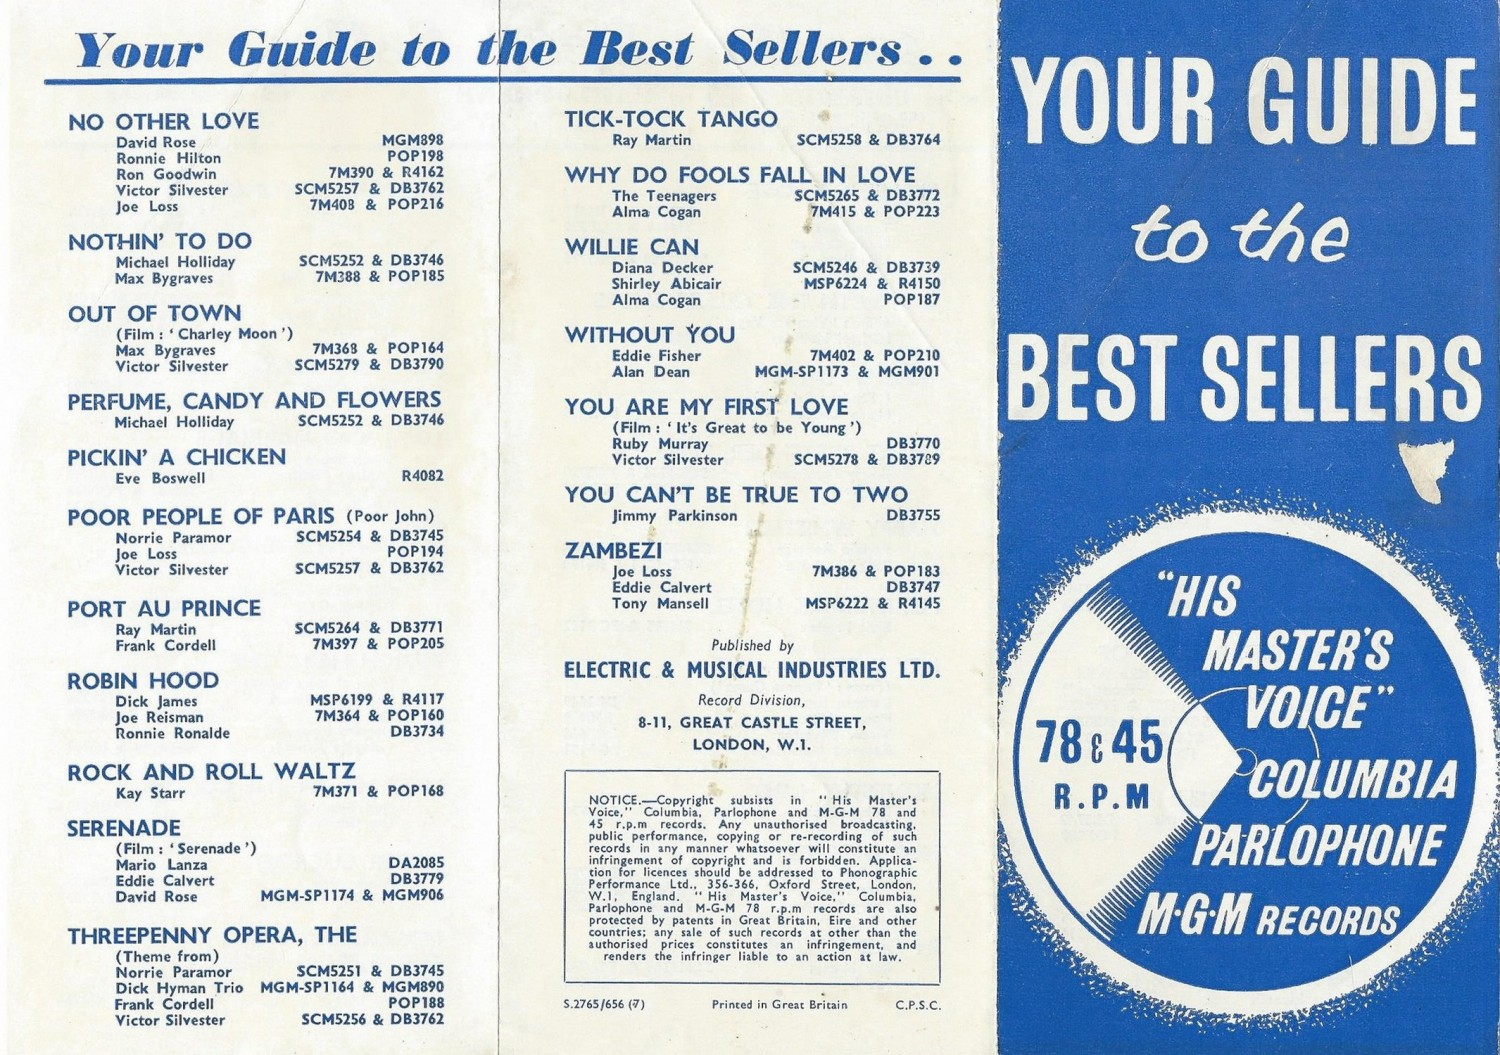 HMV Your Guide To Best Sellers 1956-06 (Alan White) 01